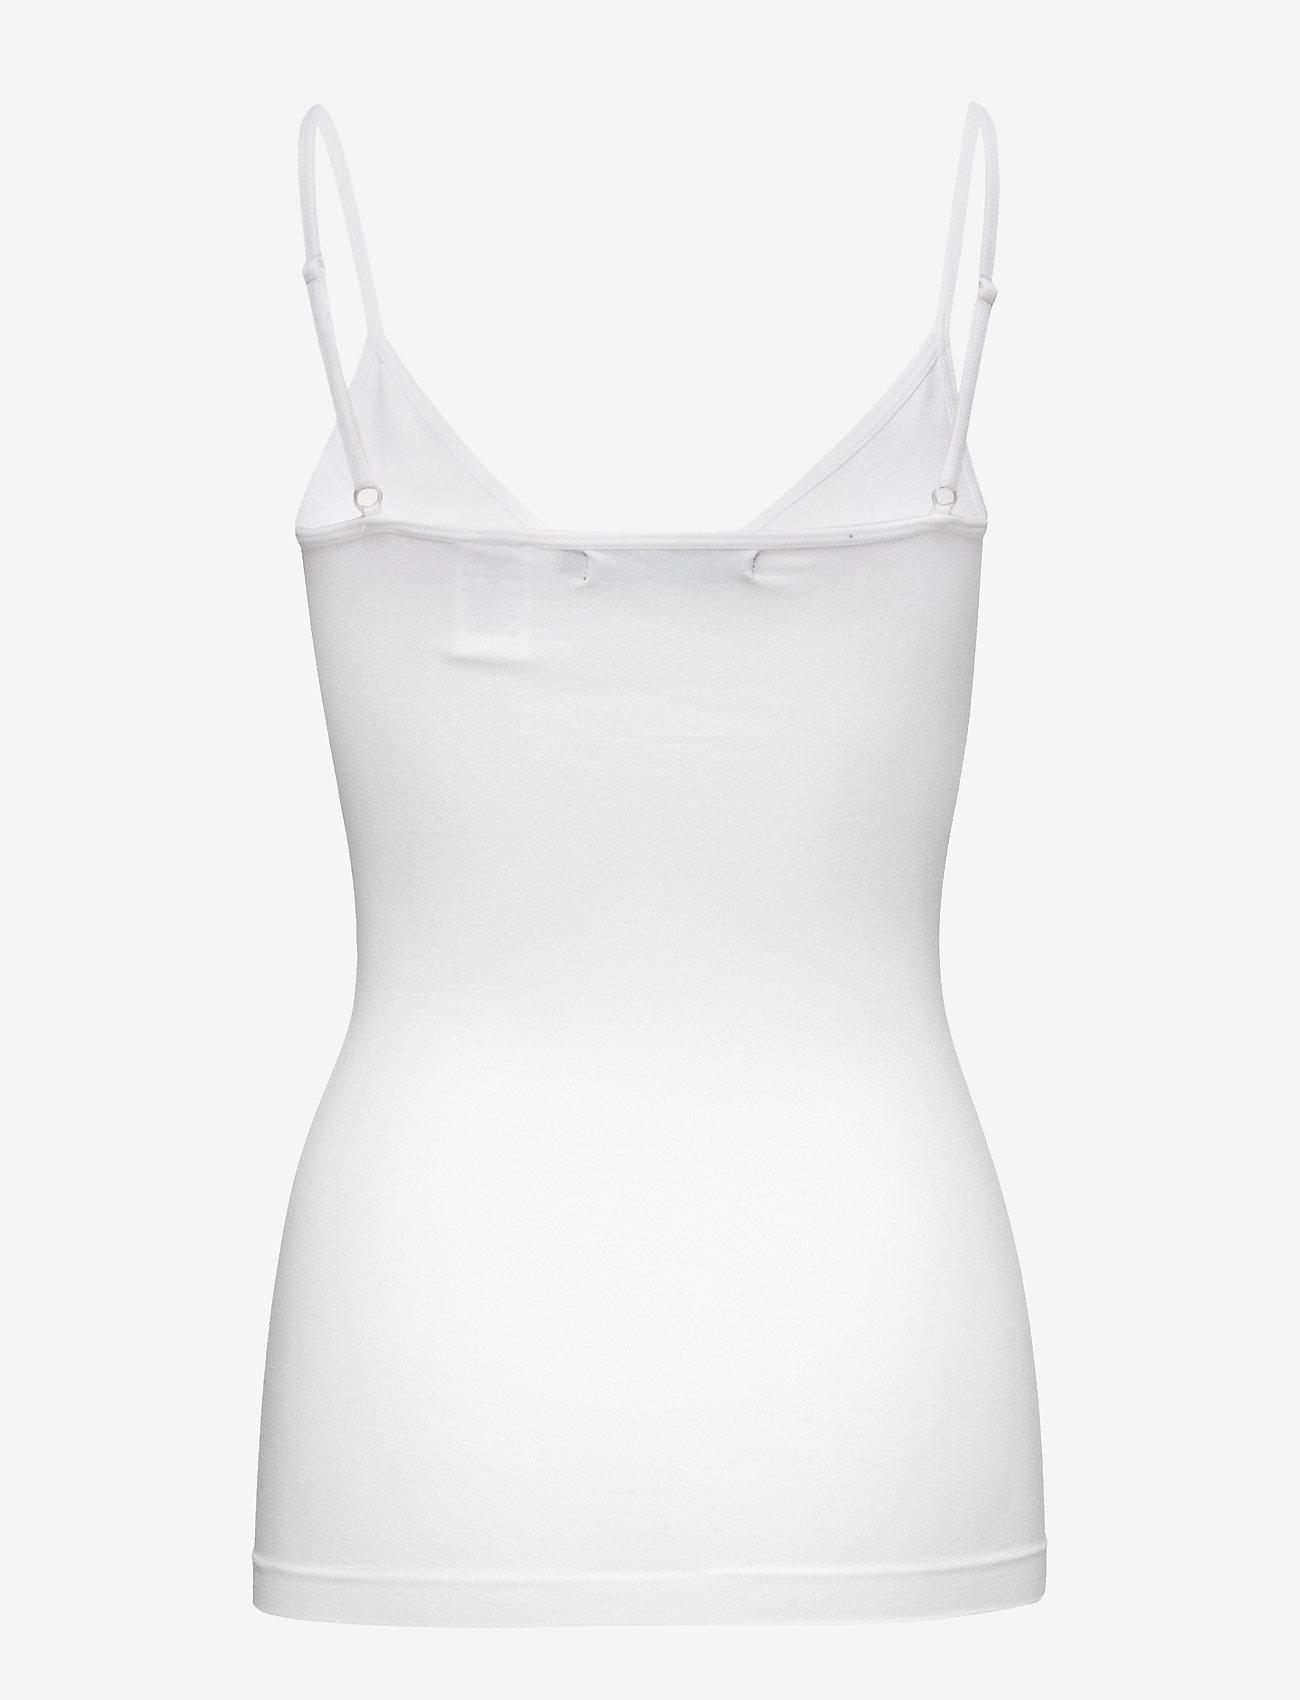 Minus - CELINA top - sleeveless tops - white